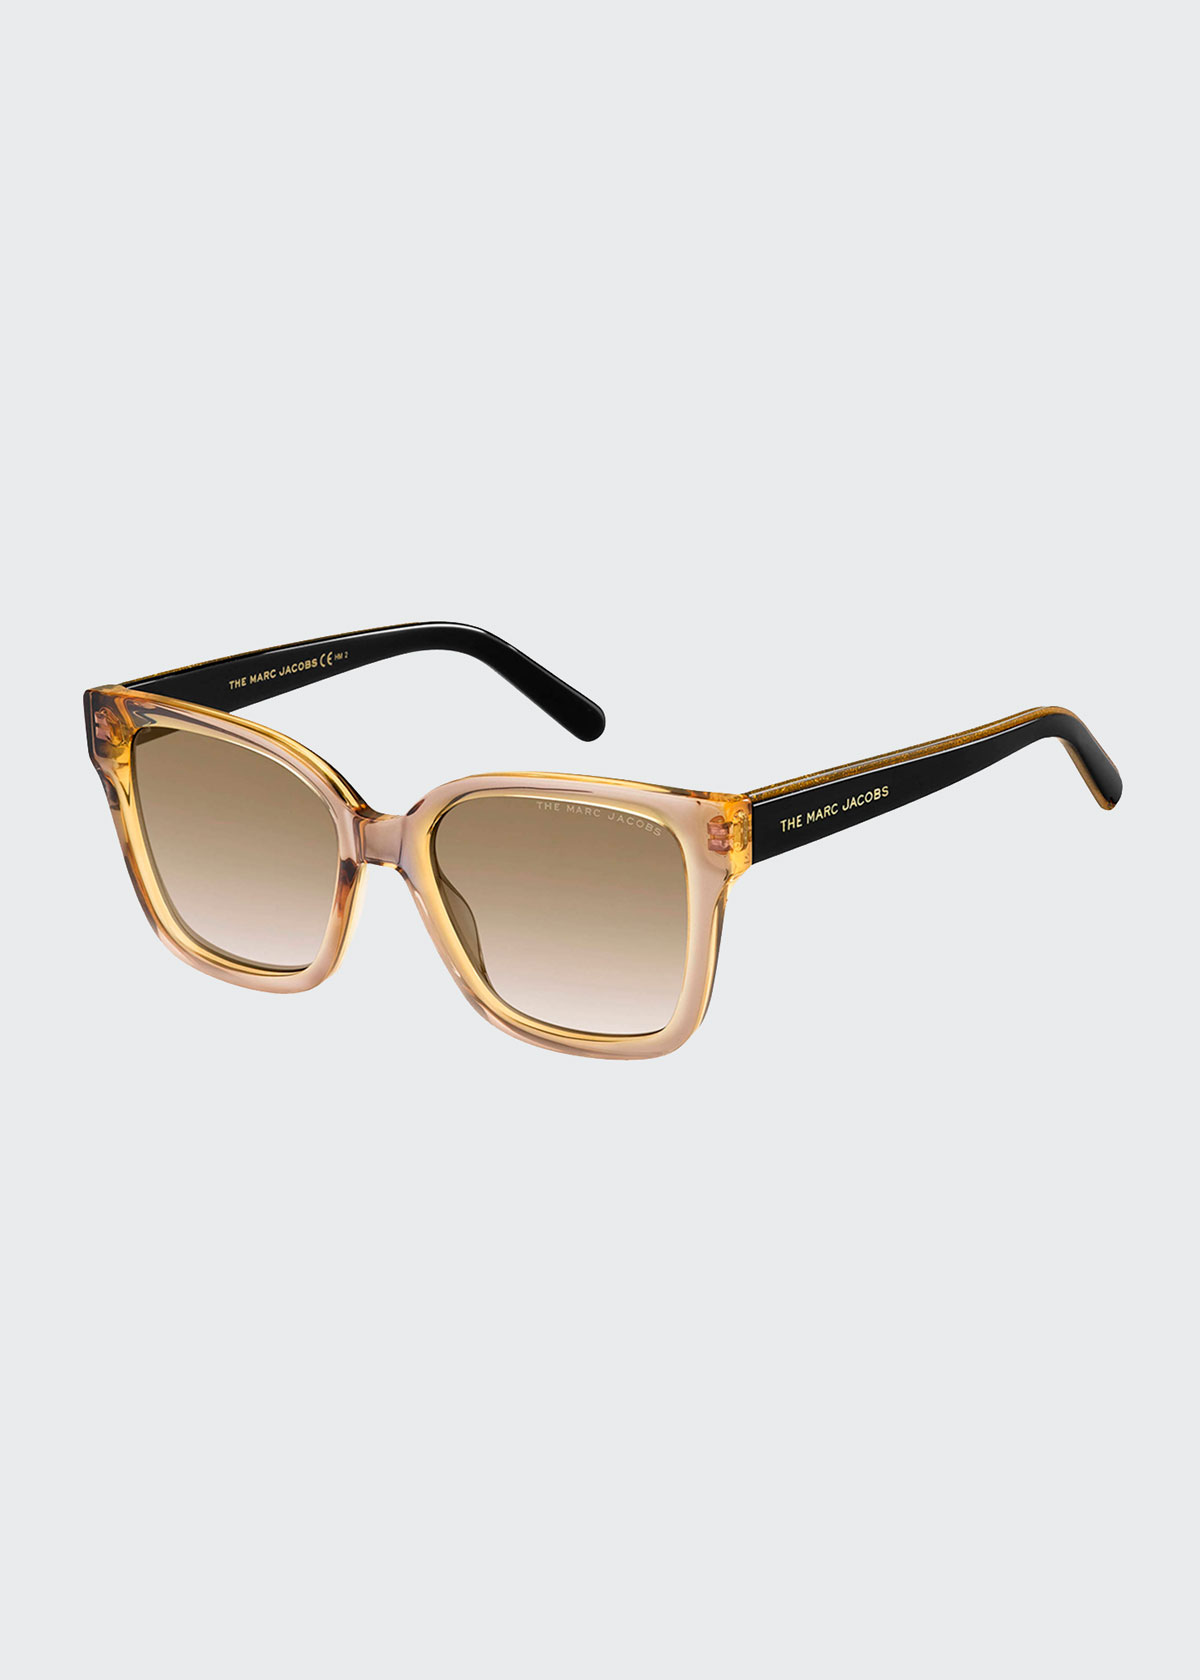 The Marc Jacobs SQUARE TWO-TONE ACETATE SUNGLASSES